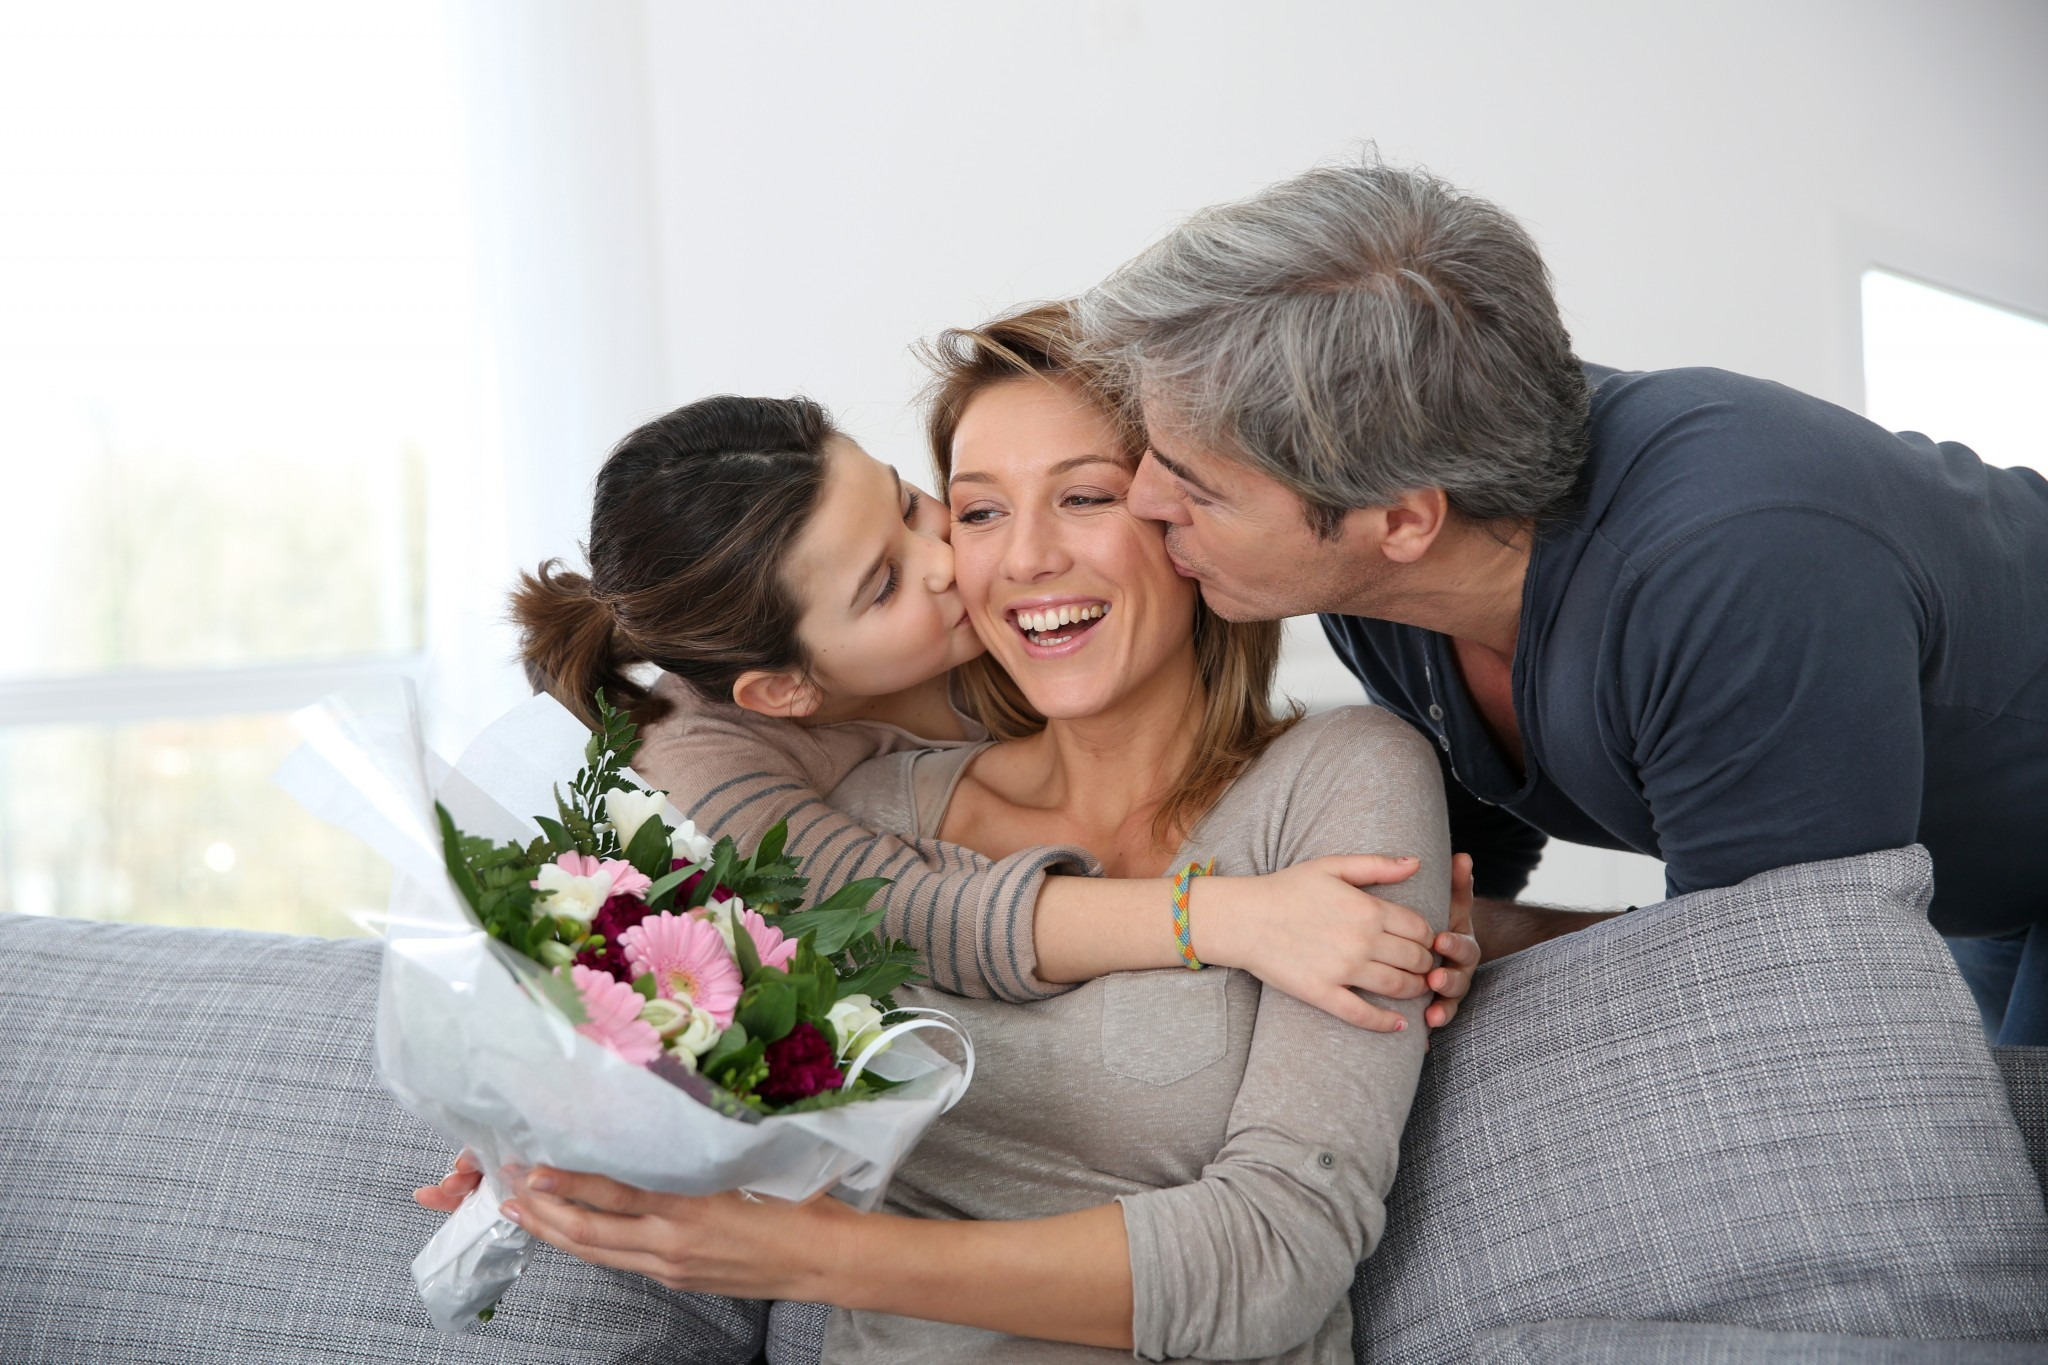 Comparing consumer spending for Mother's Day and Father's Day